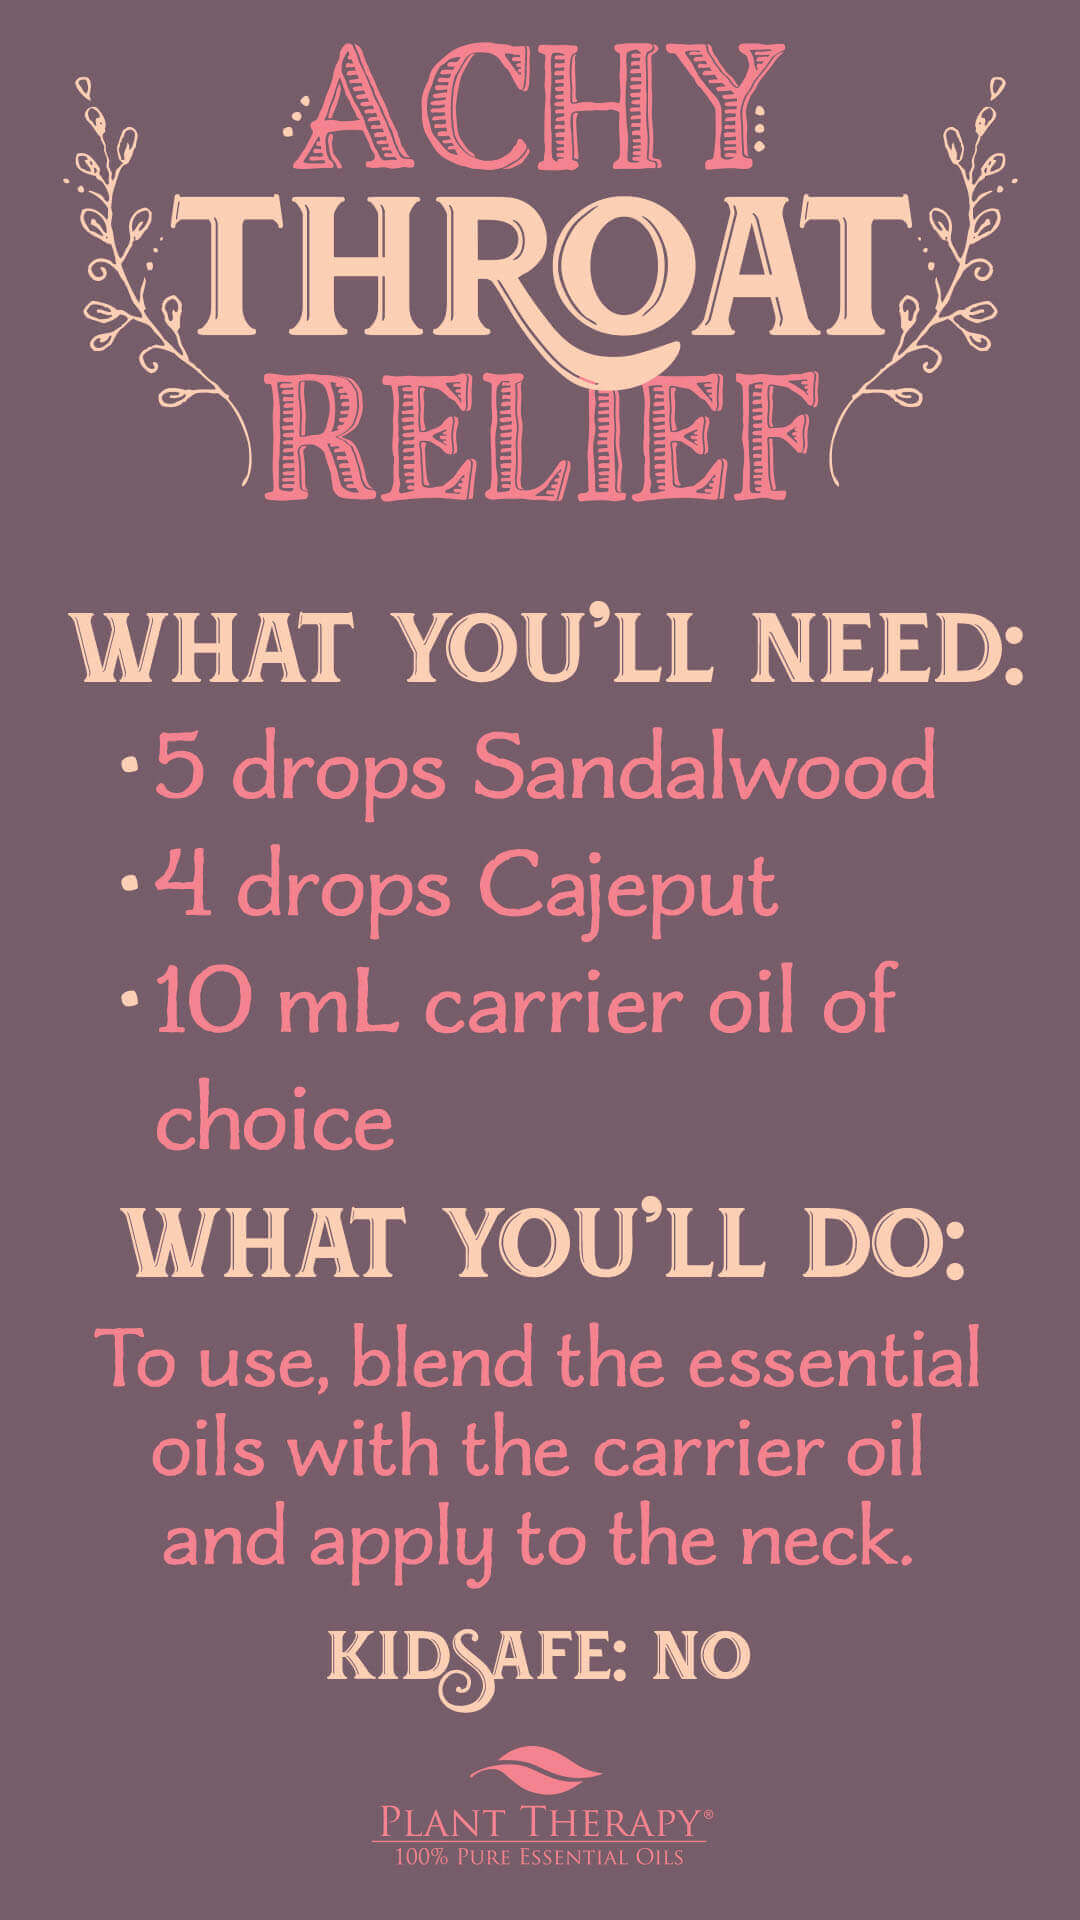 Essential Oils for Sore Throat - Benefits and Uses - DIY Neck Rub